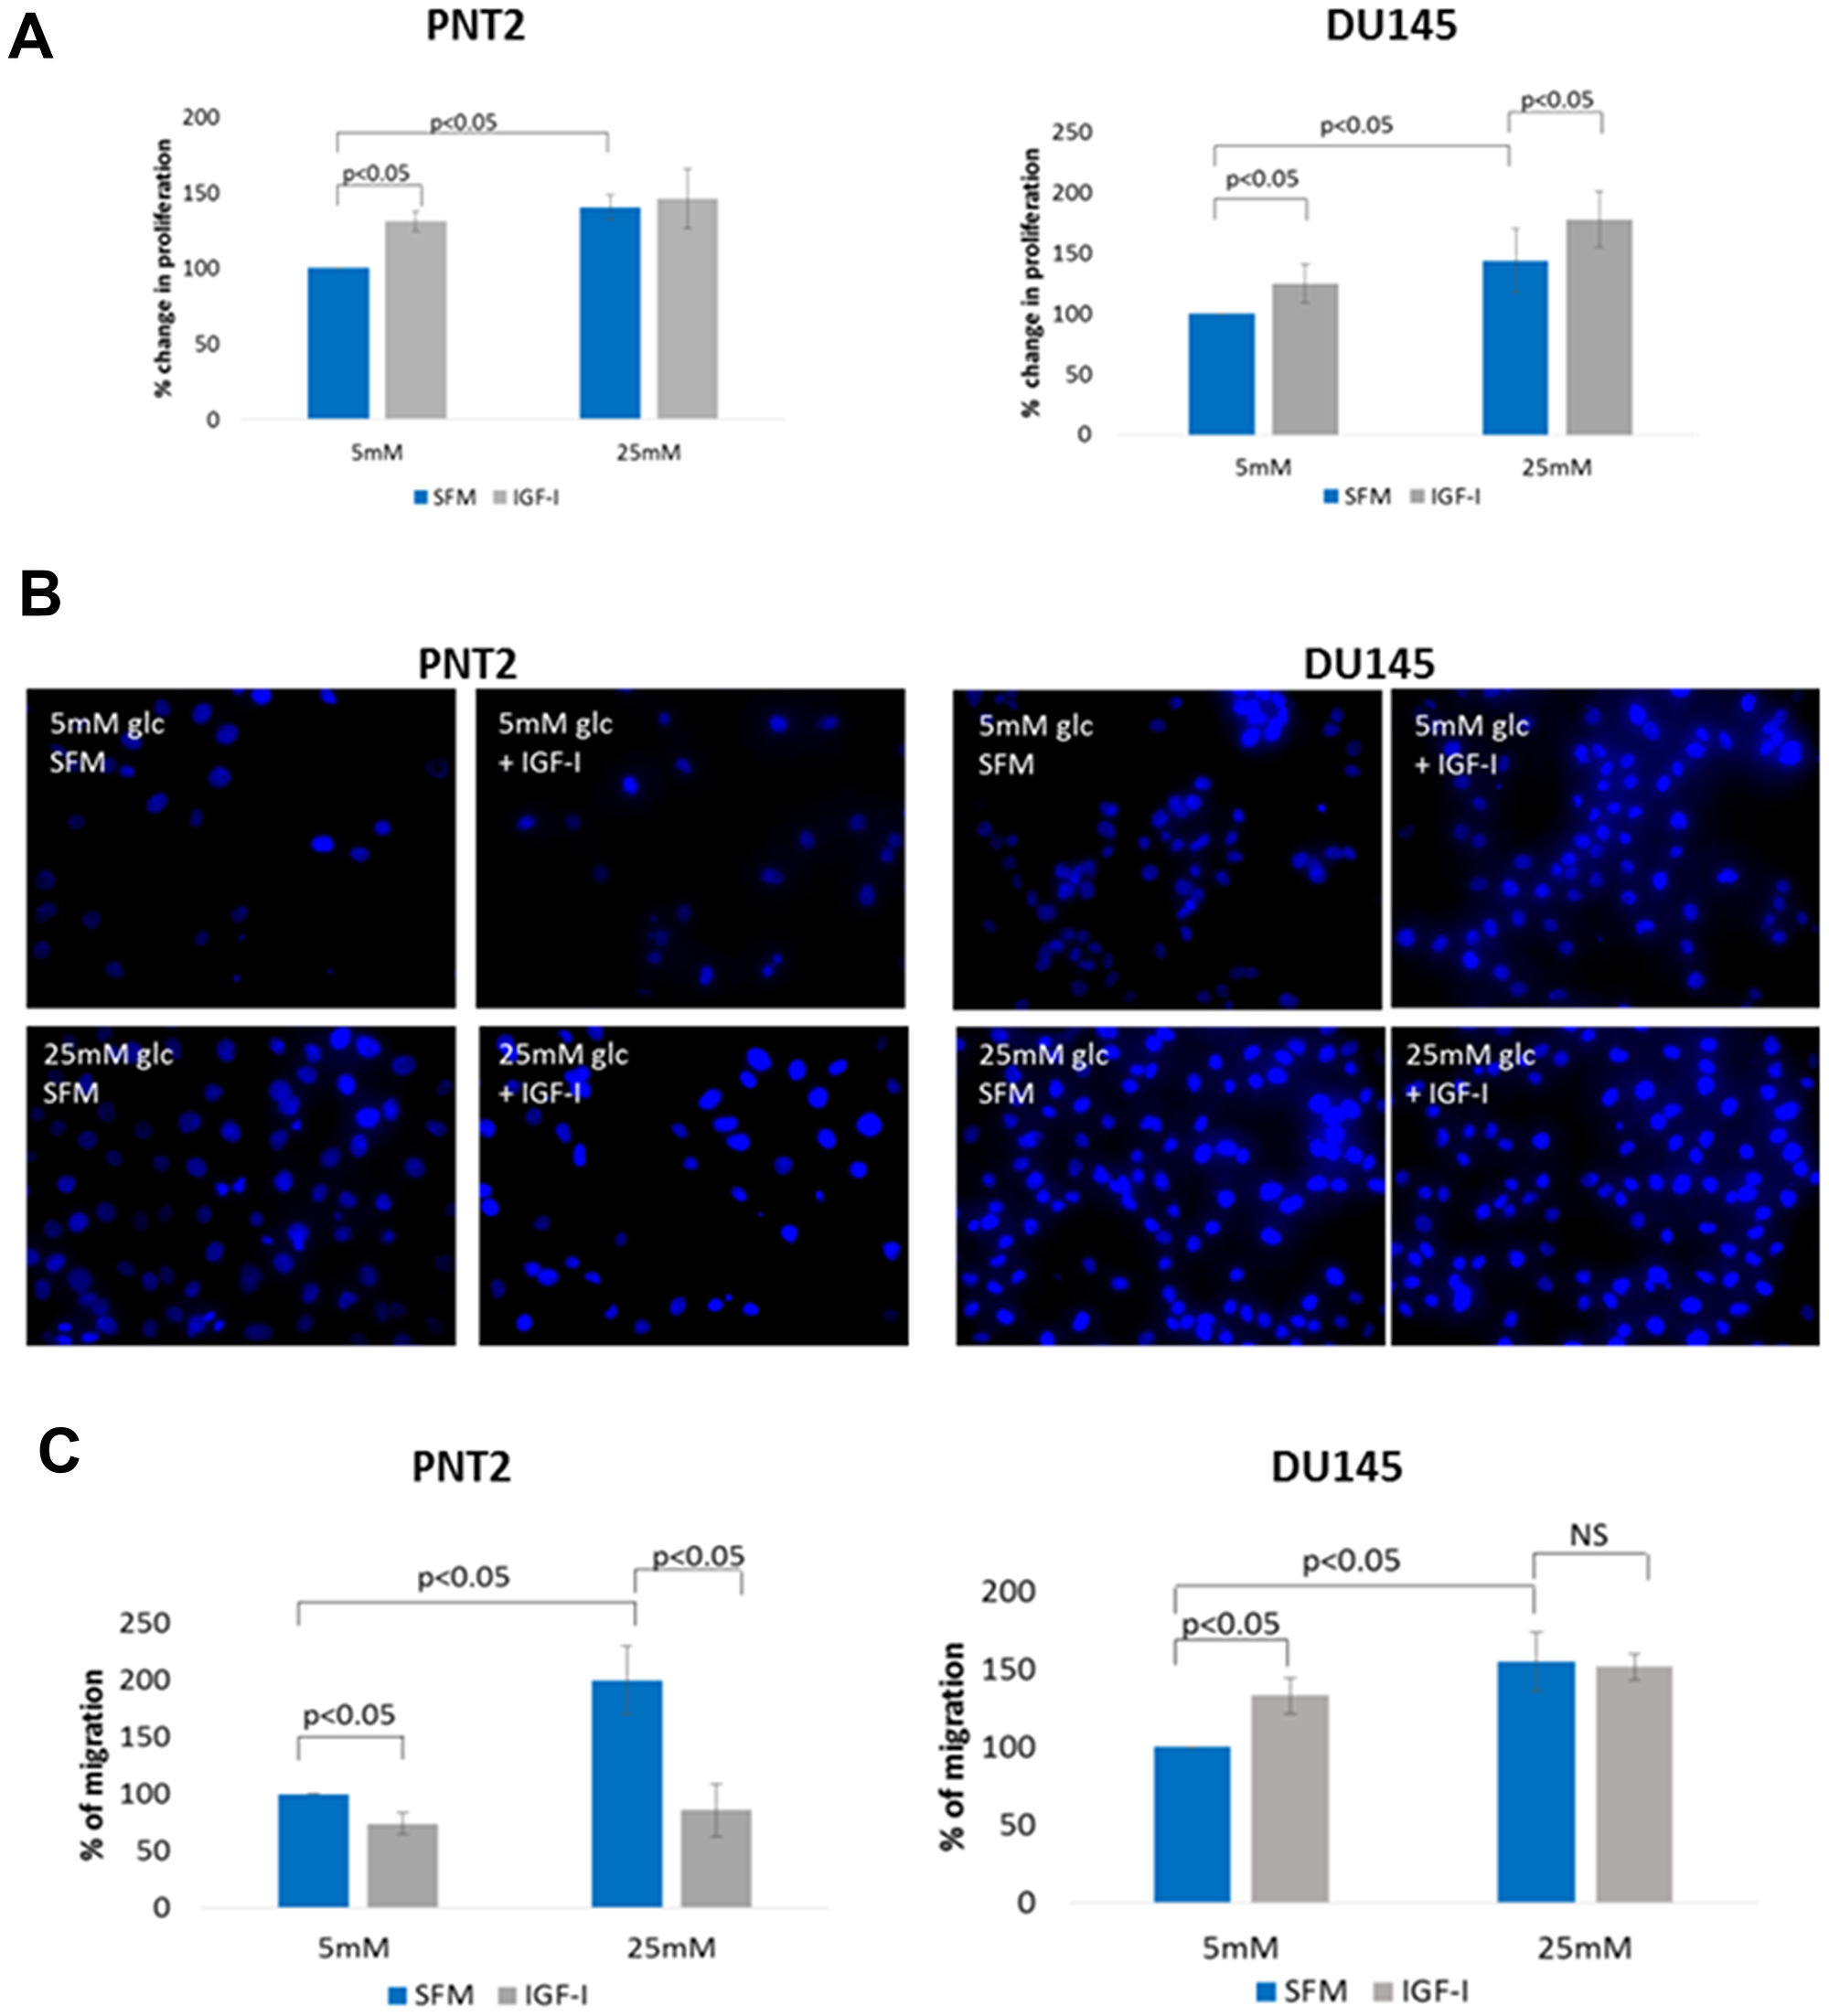 The effect of IGF on cell proliferation and migration in prostate epithelial cells in altered glucose condition.